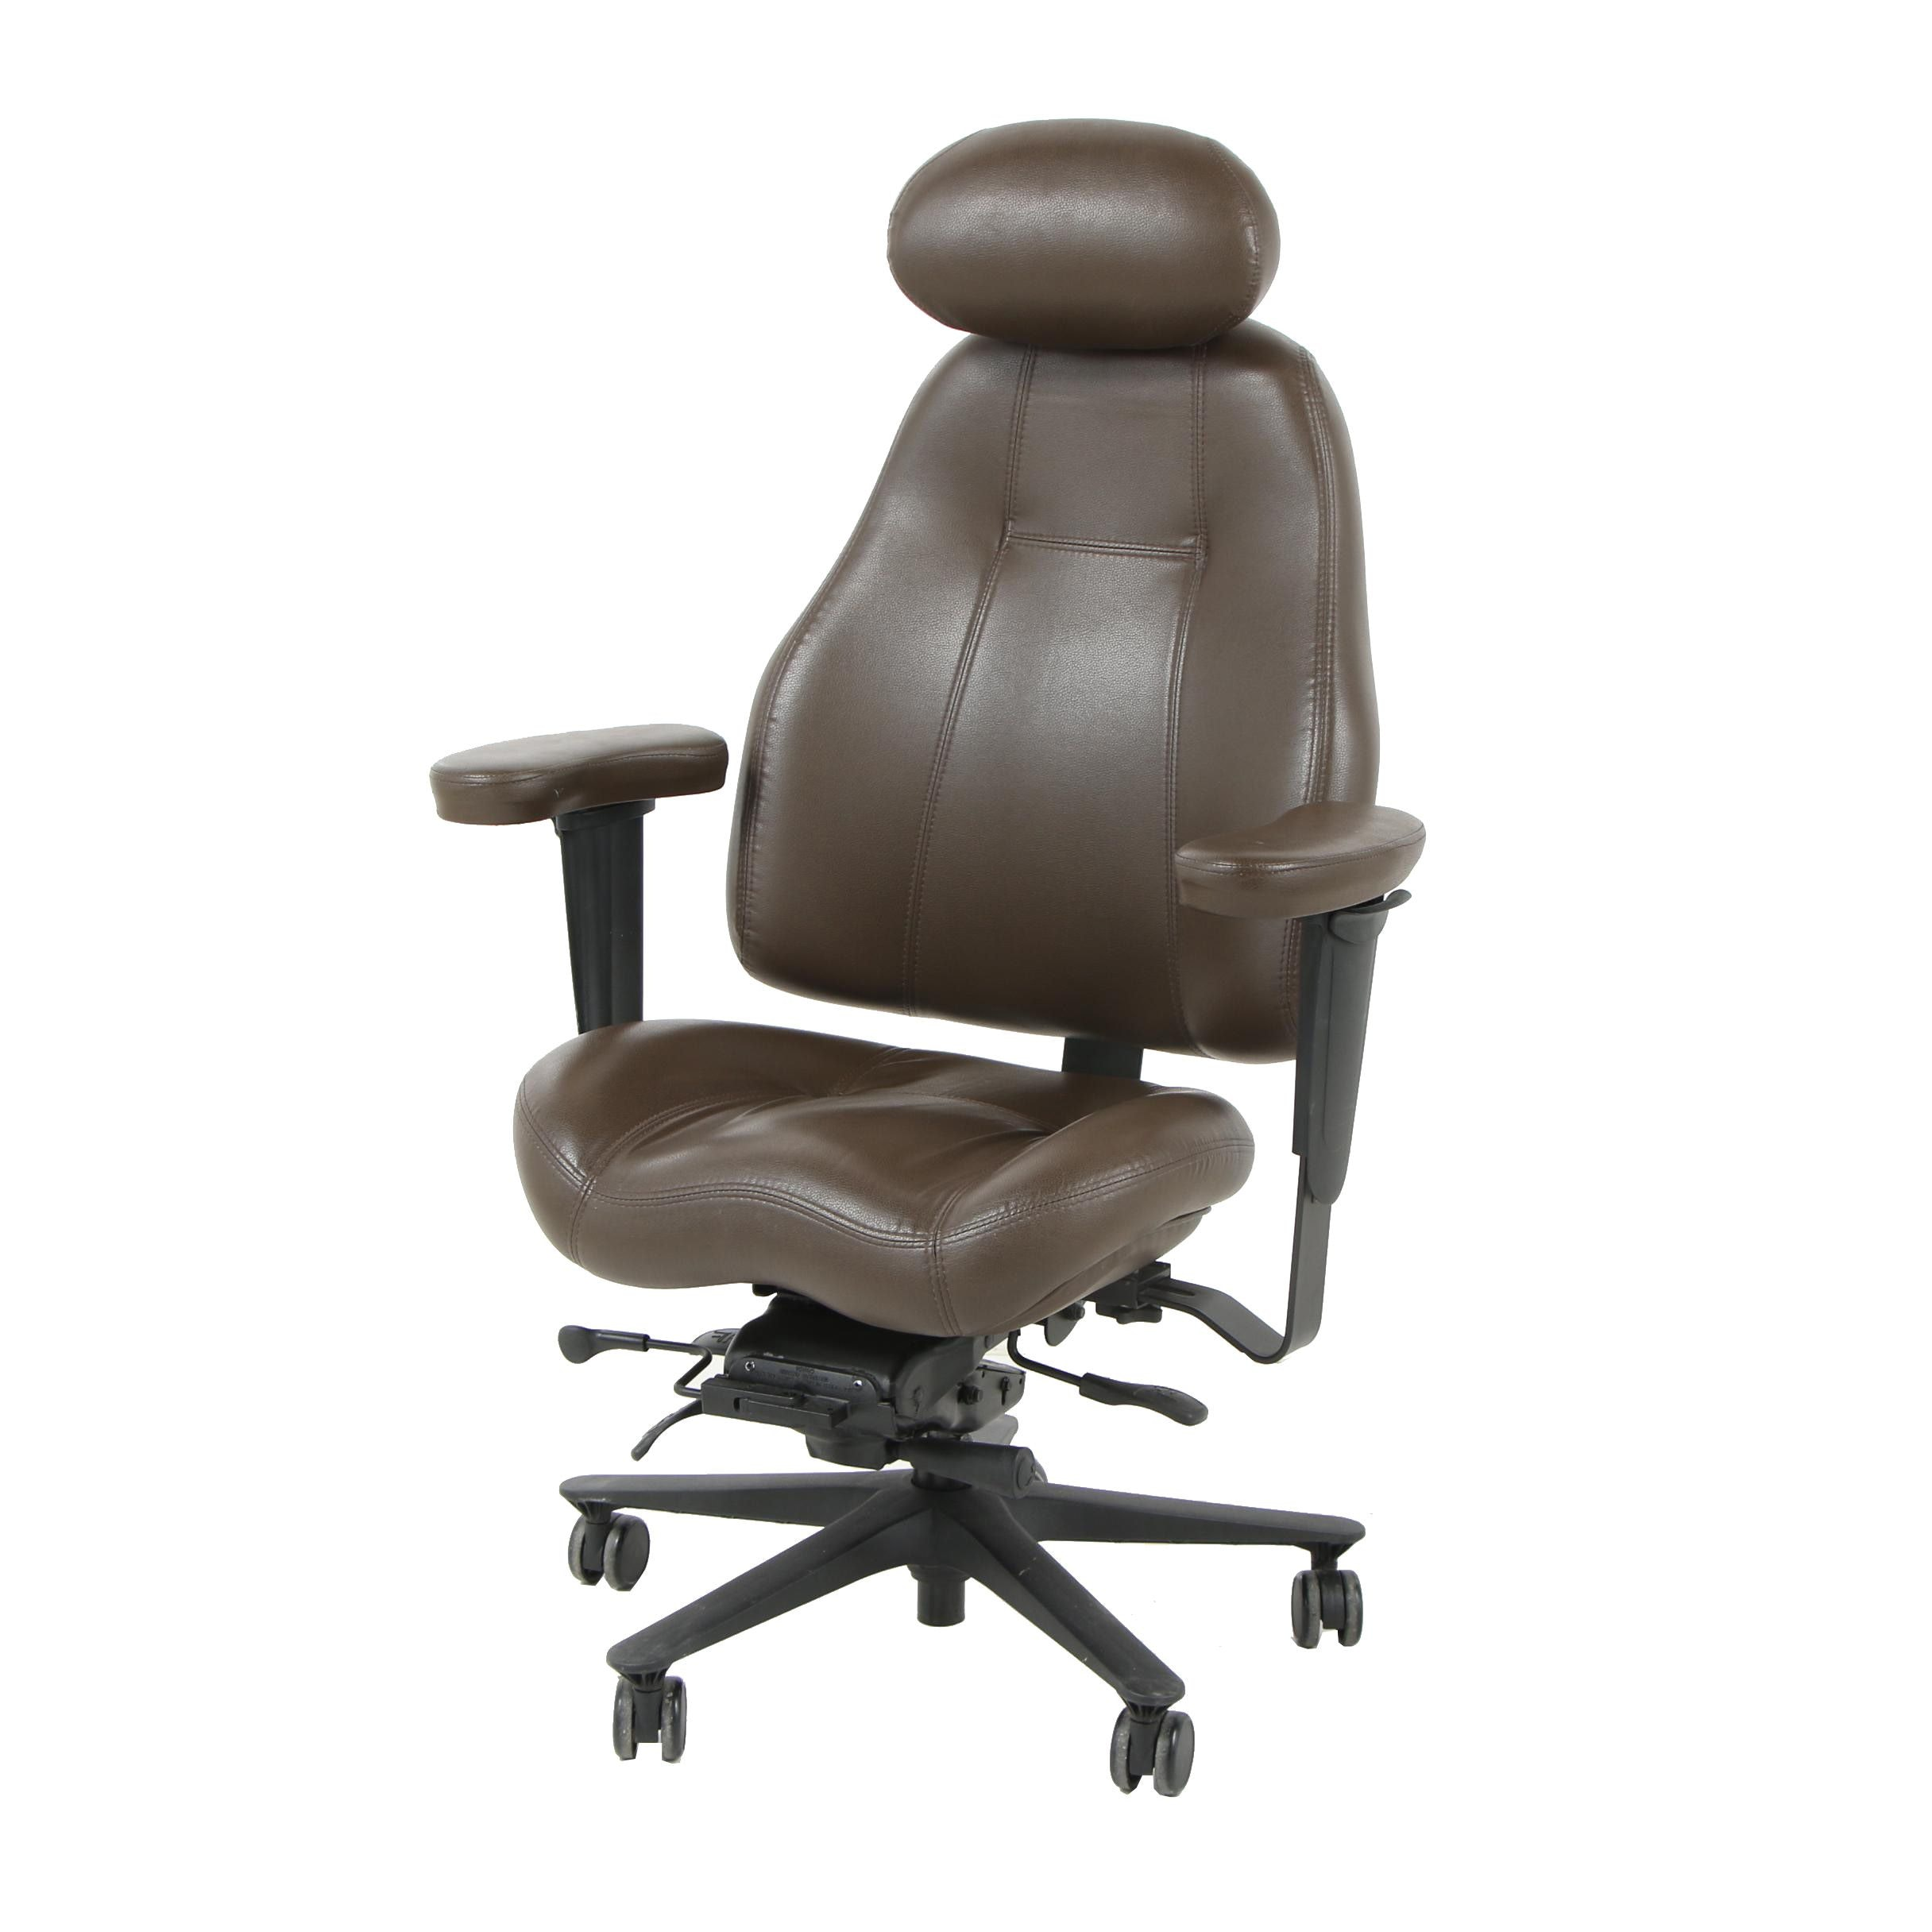 Mordern Lifeform Brown Leather Office Chair